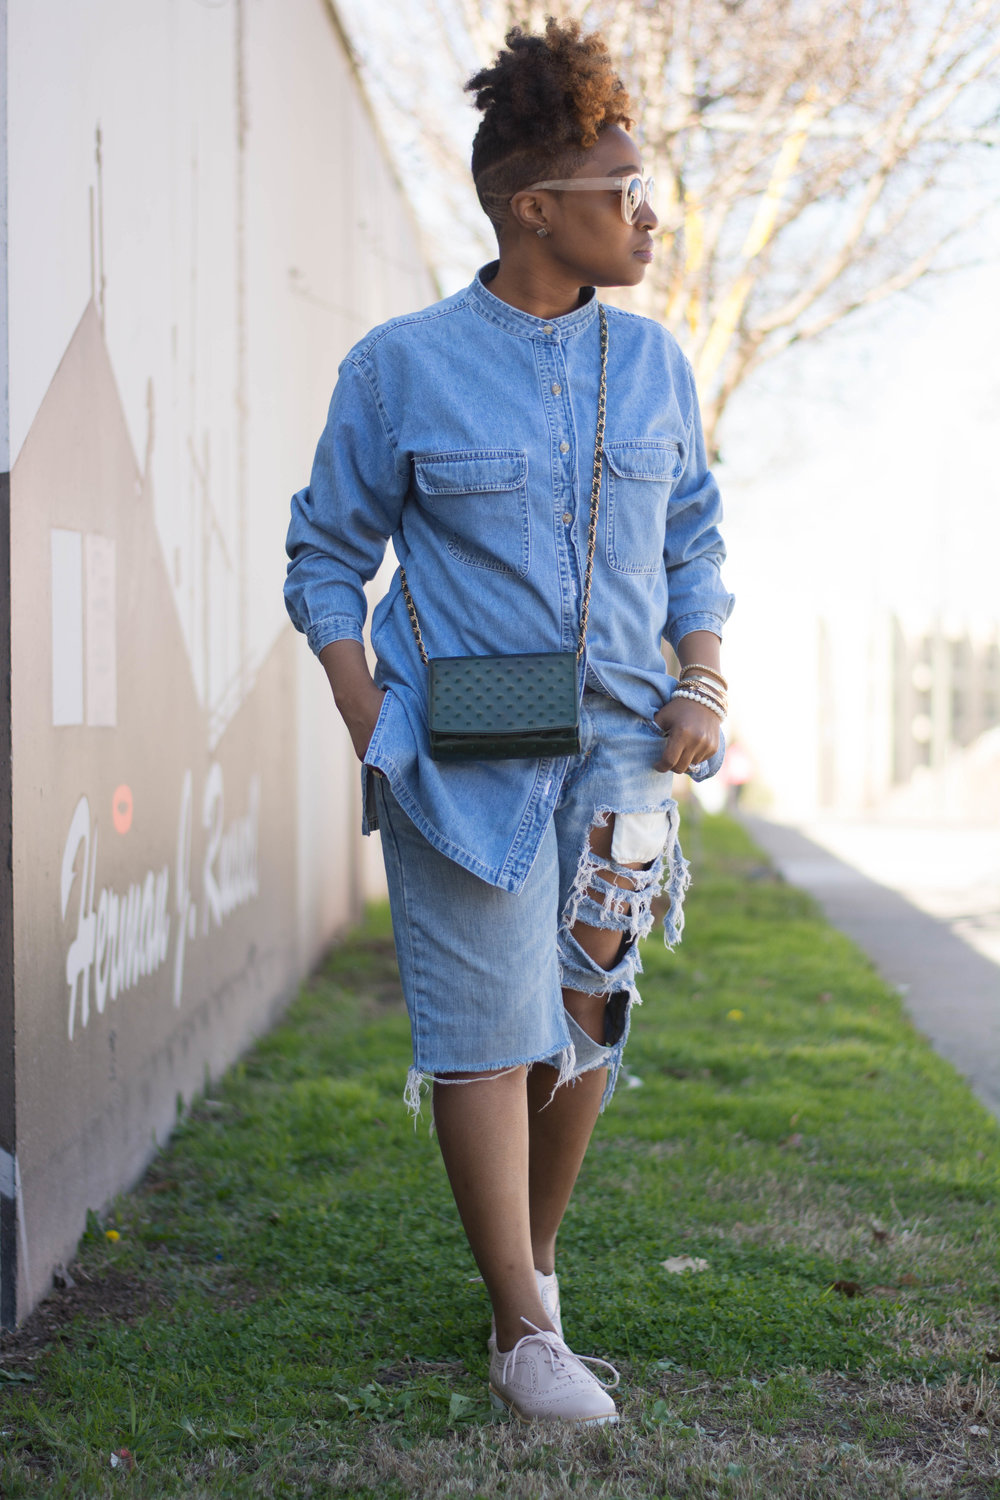 The Style Klazit, Melodie Stewart, Atlanta Style blogger, Denim on Denim, Justfab blush oxford, Atlanta StreetStyle